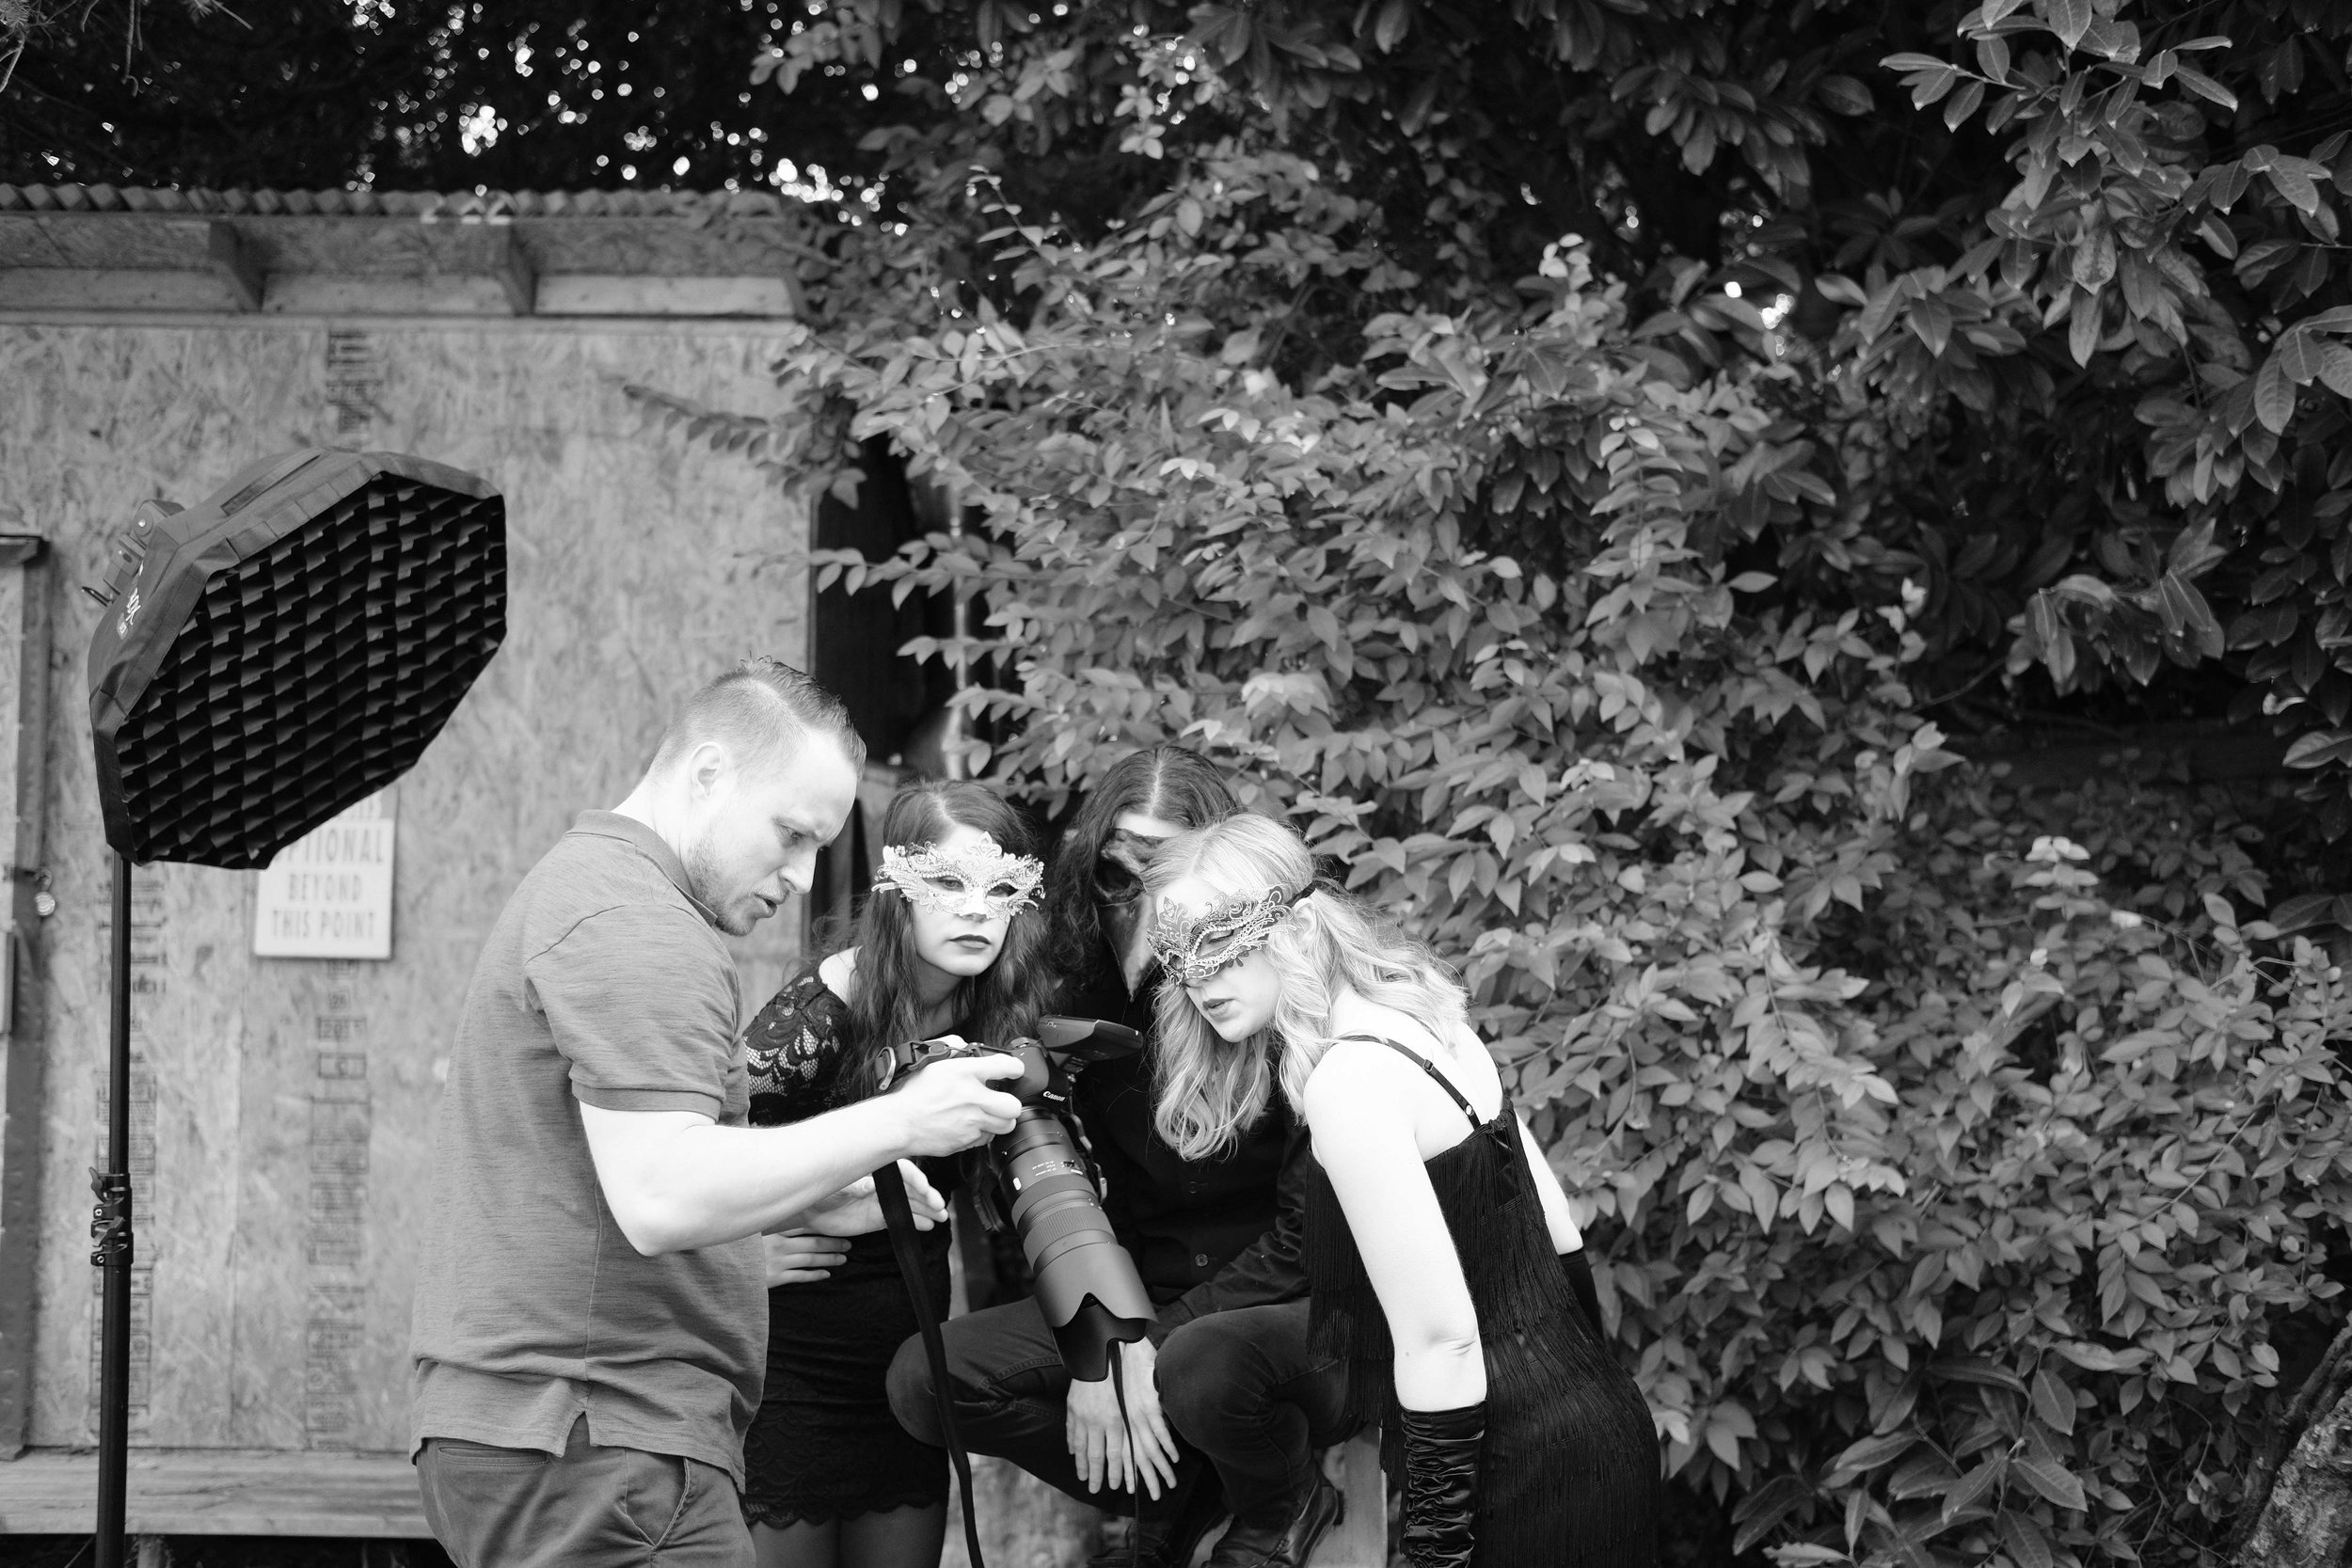 Behind the Scenes at the photoshoot for the Winter Solstice Masquerade Party. Tony is conferring with Sarah St. Albin, Heather Edgley, and  Ryan Hendrickson .